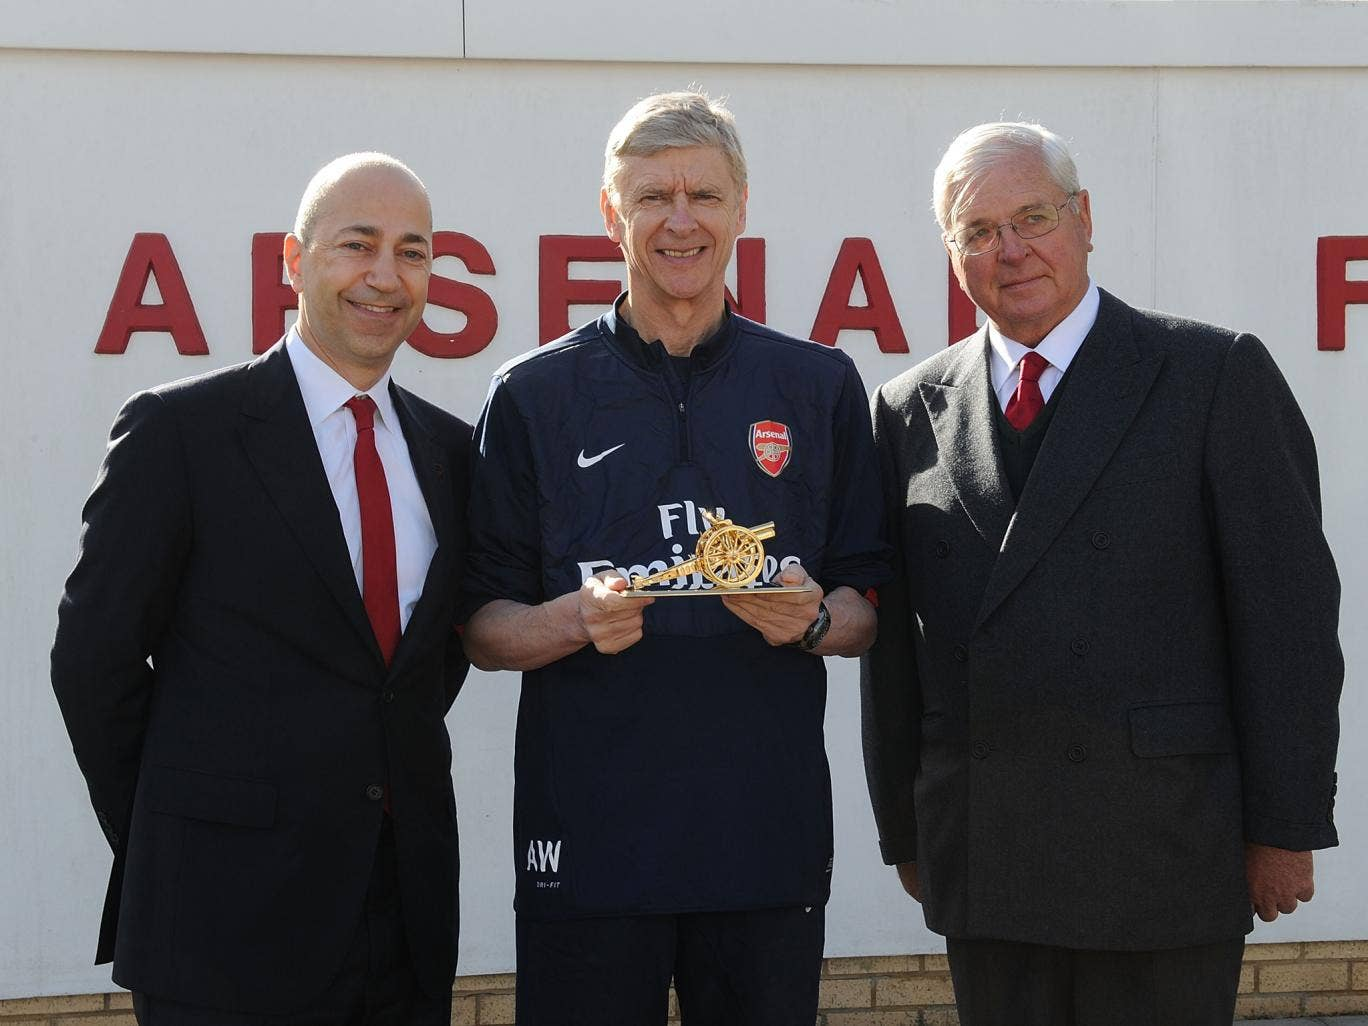 Chairman Sir Chips Keswick and CEO Ivan Gazidis present Arsene Wenger with a gold cannon to commemorate his 1000th game as Arsenal manager at London Colney